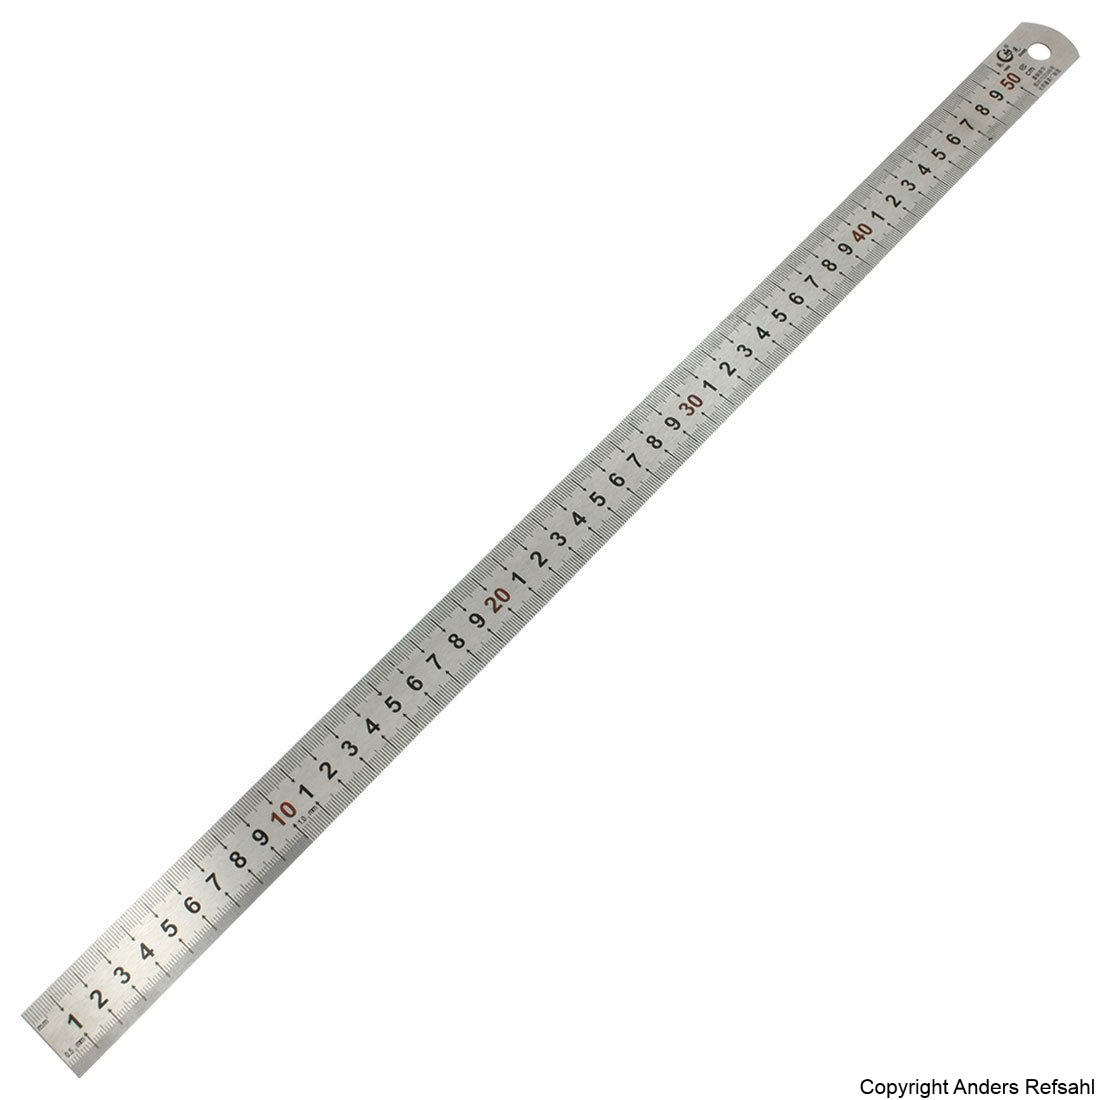 Stainless Steel Straight Measure Ruler